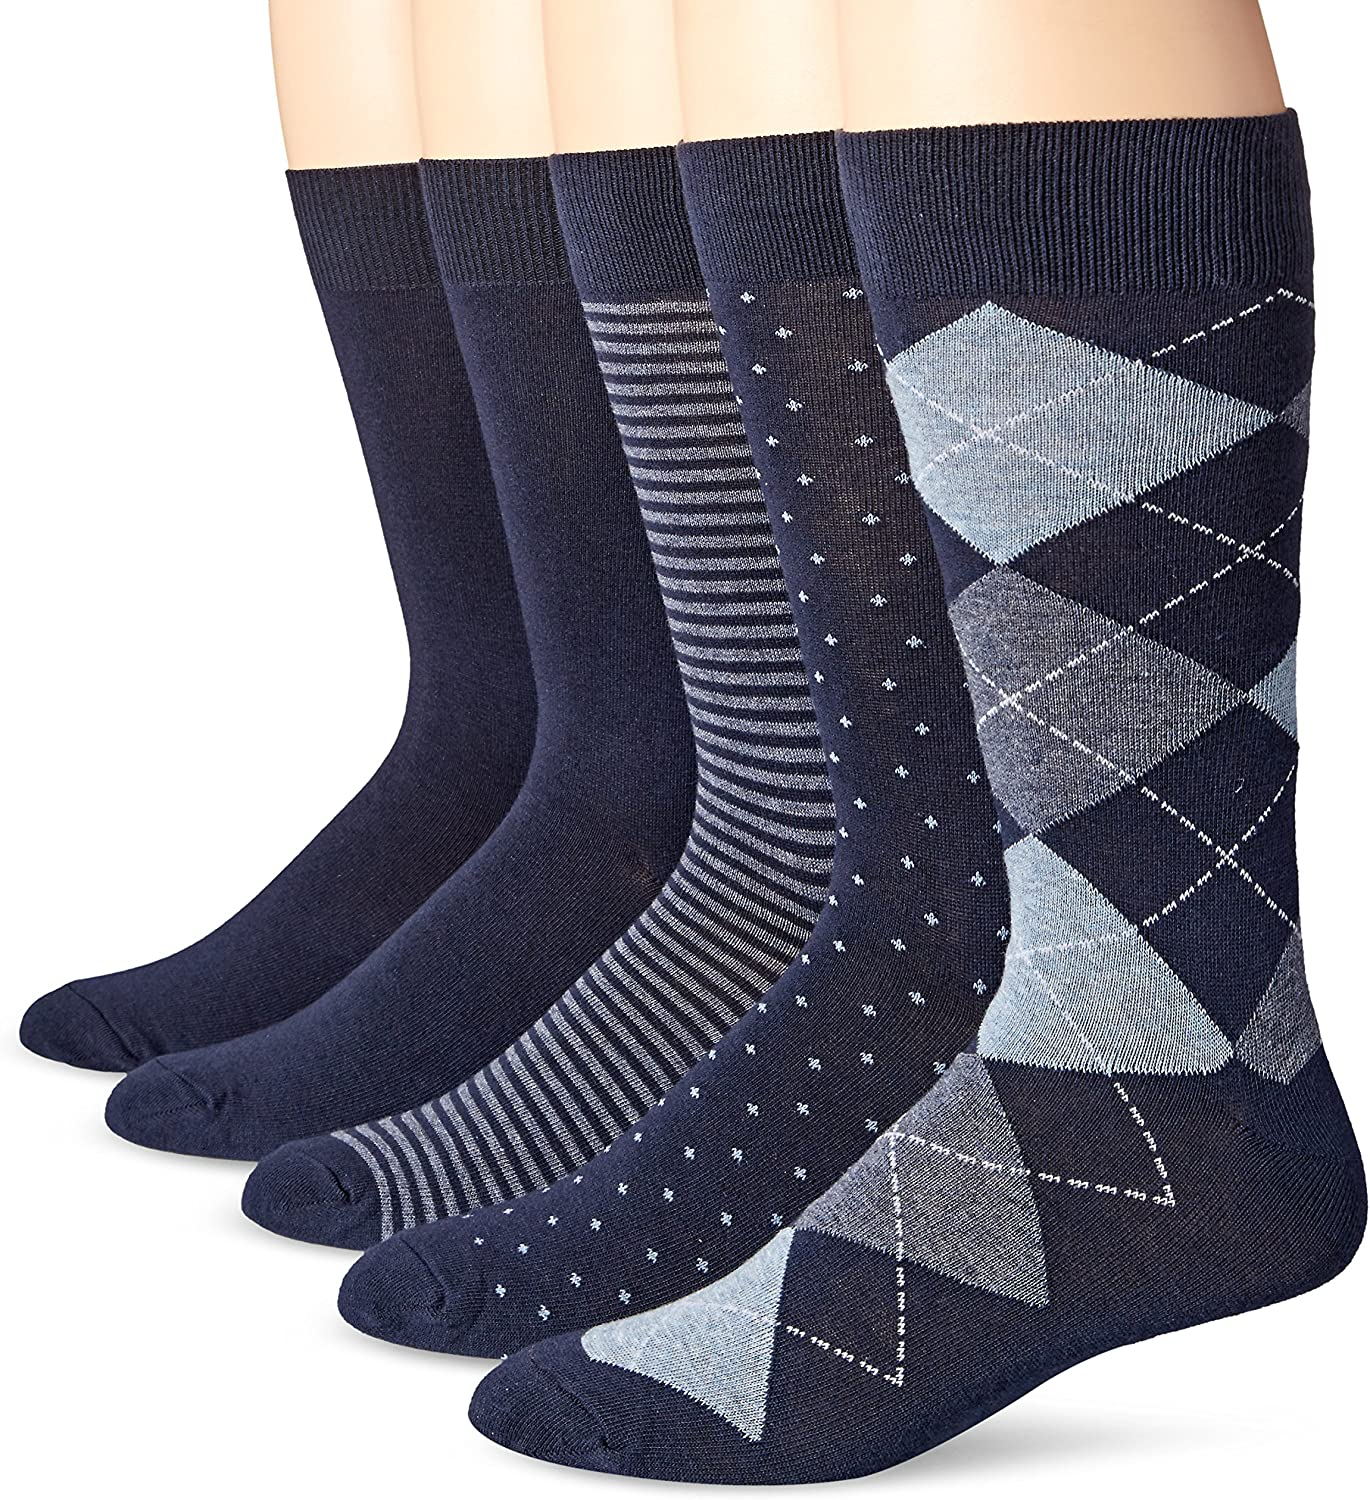 Amazon Essentials Men's 5-Pack Patterned Dress Socks